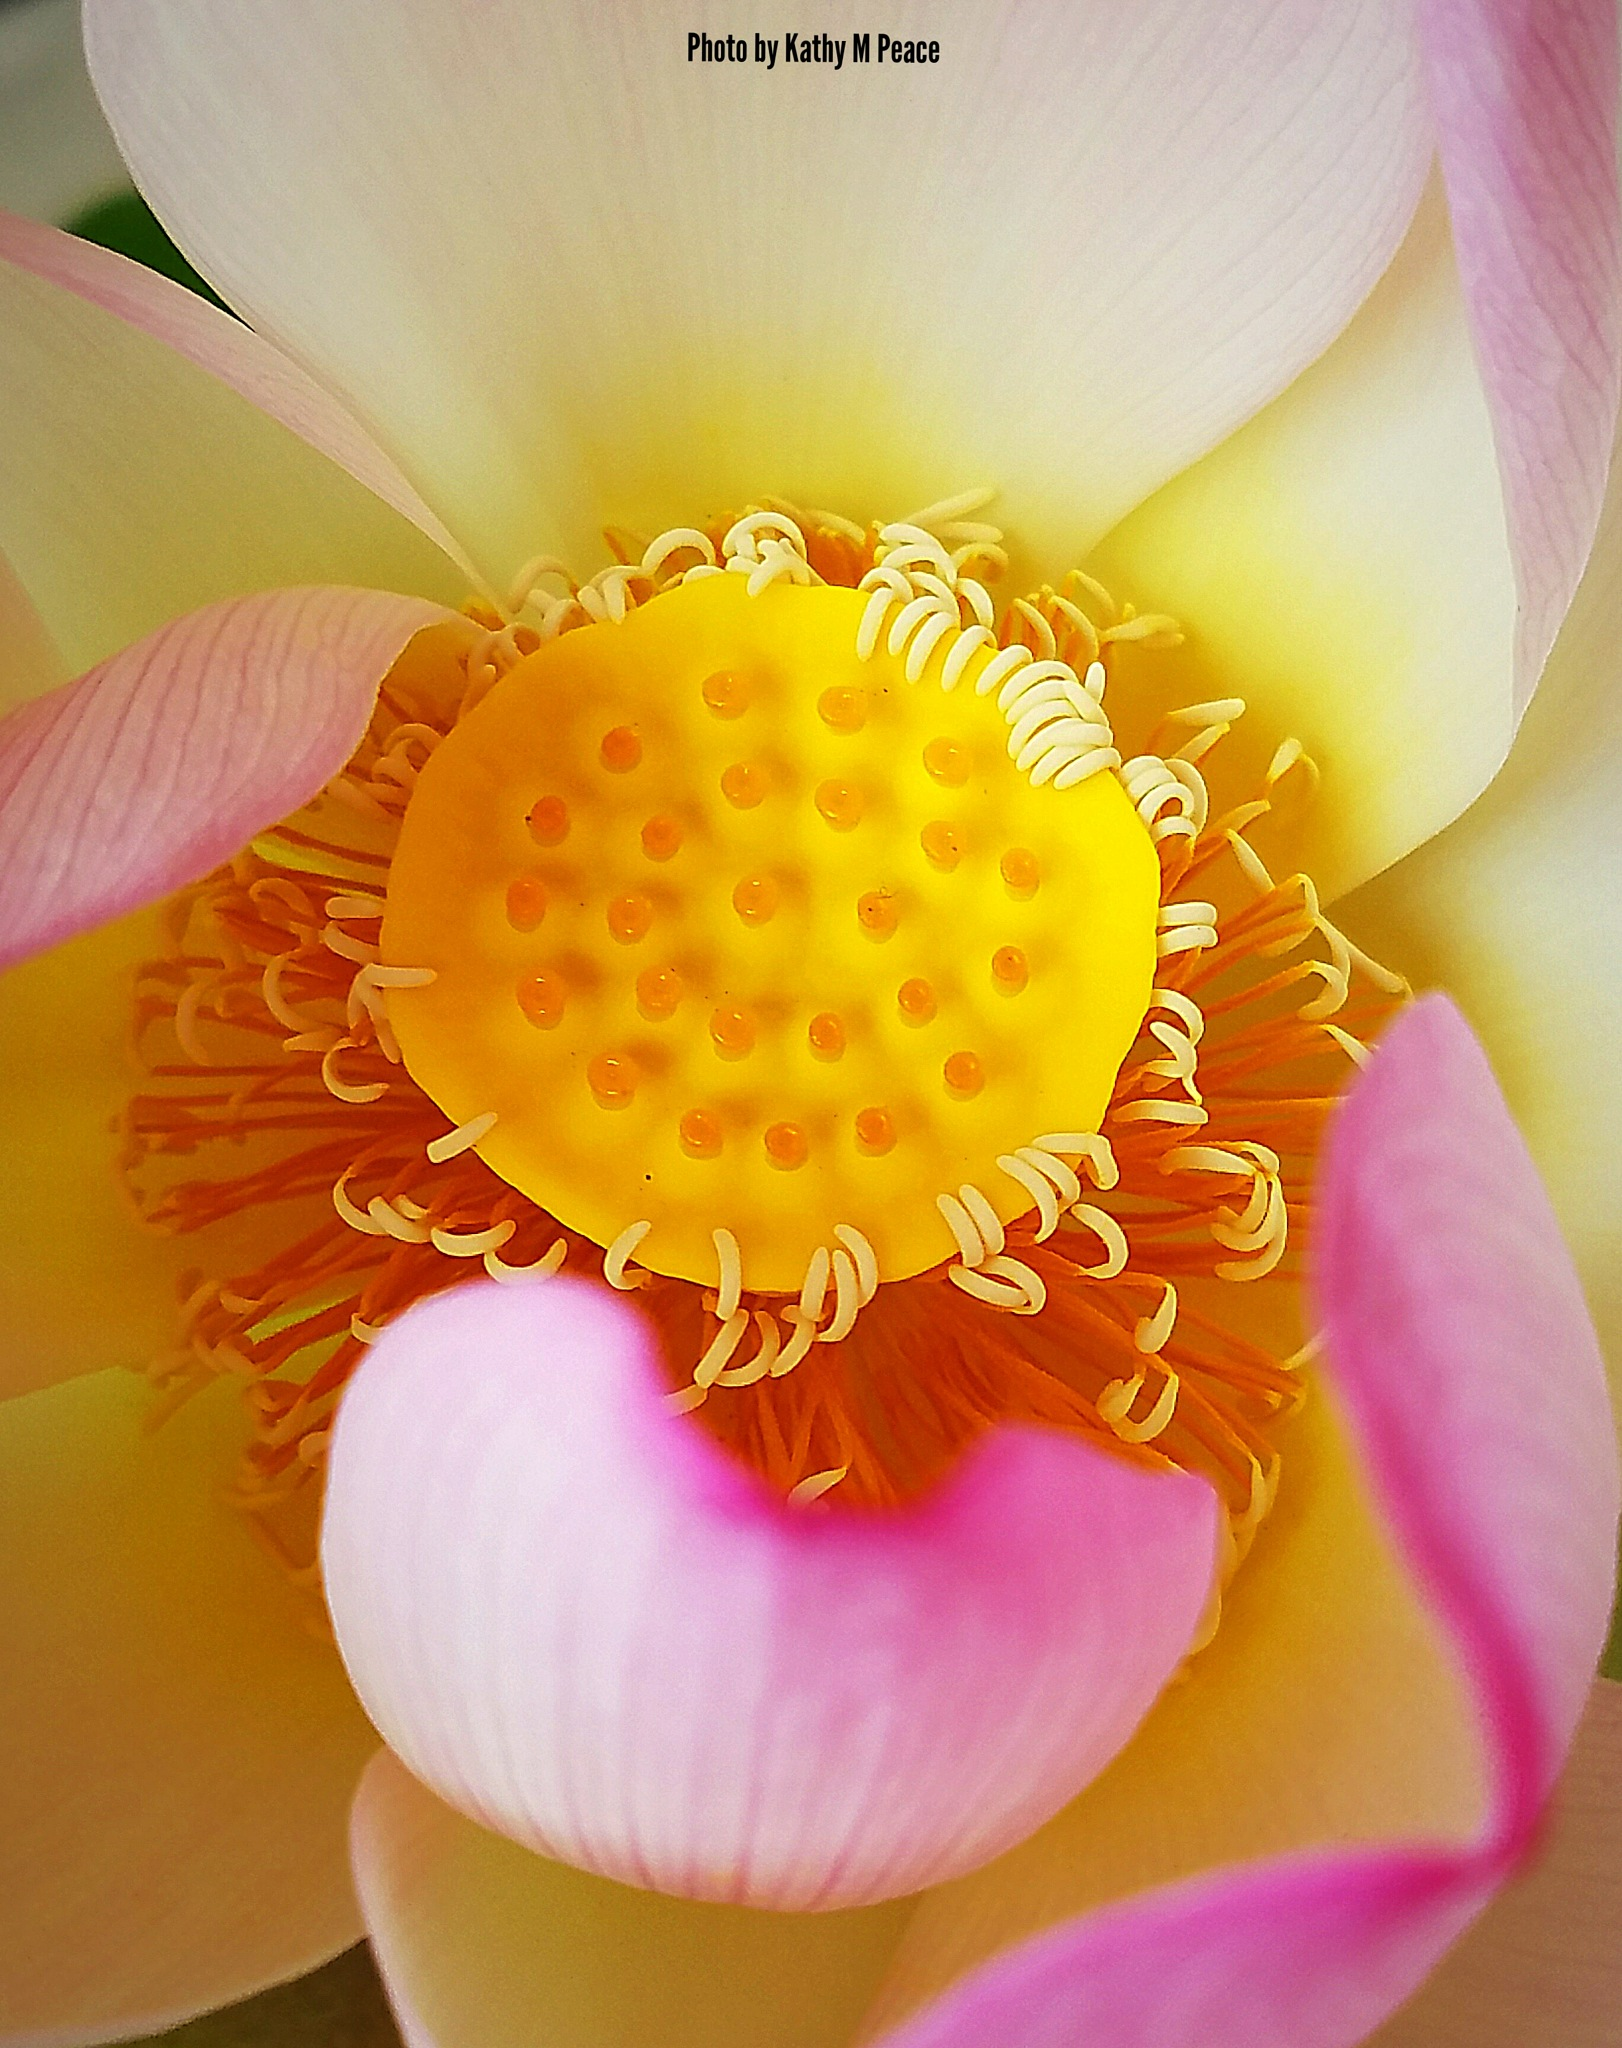 inside of a lotus flower II by kathy.peace.3